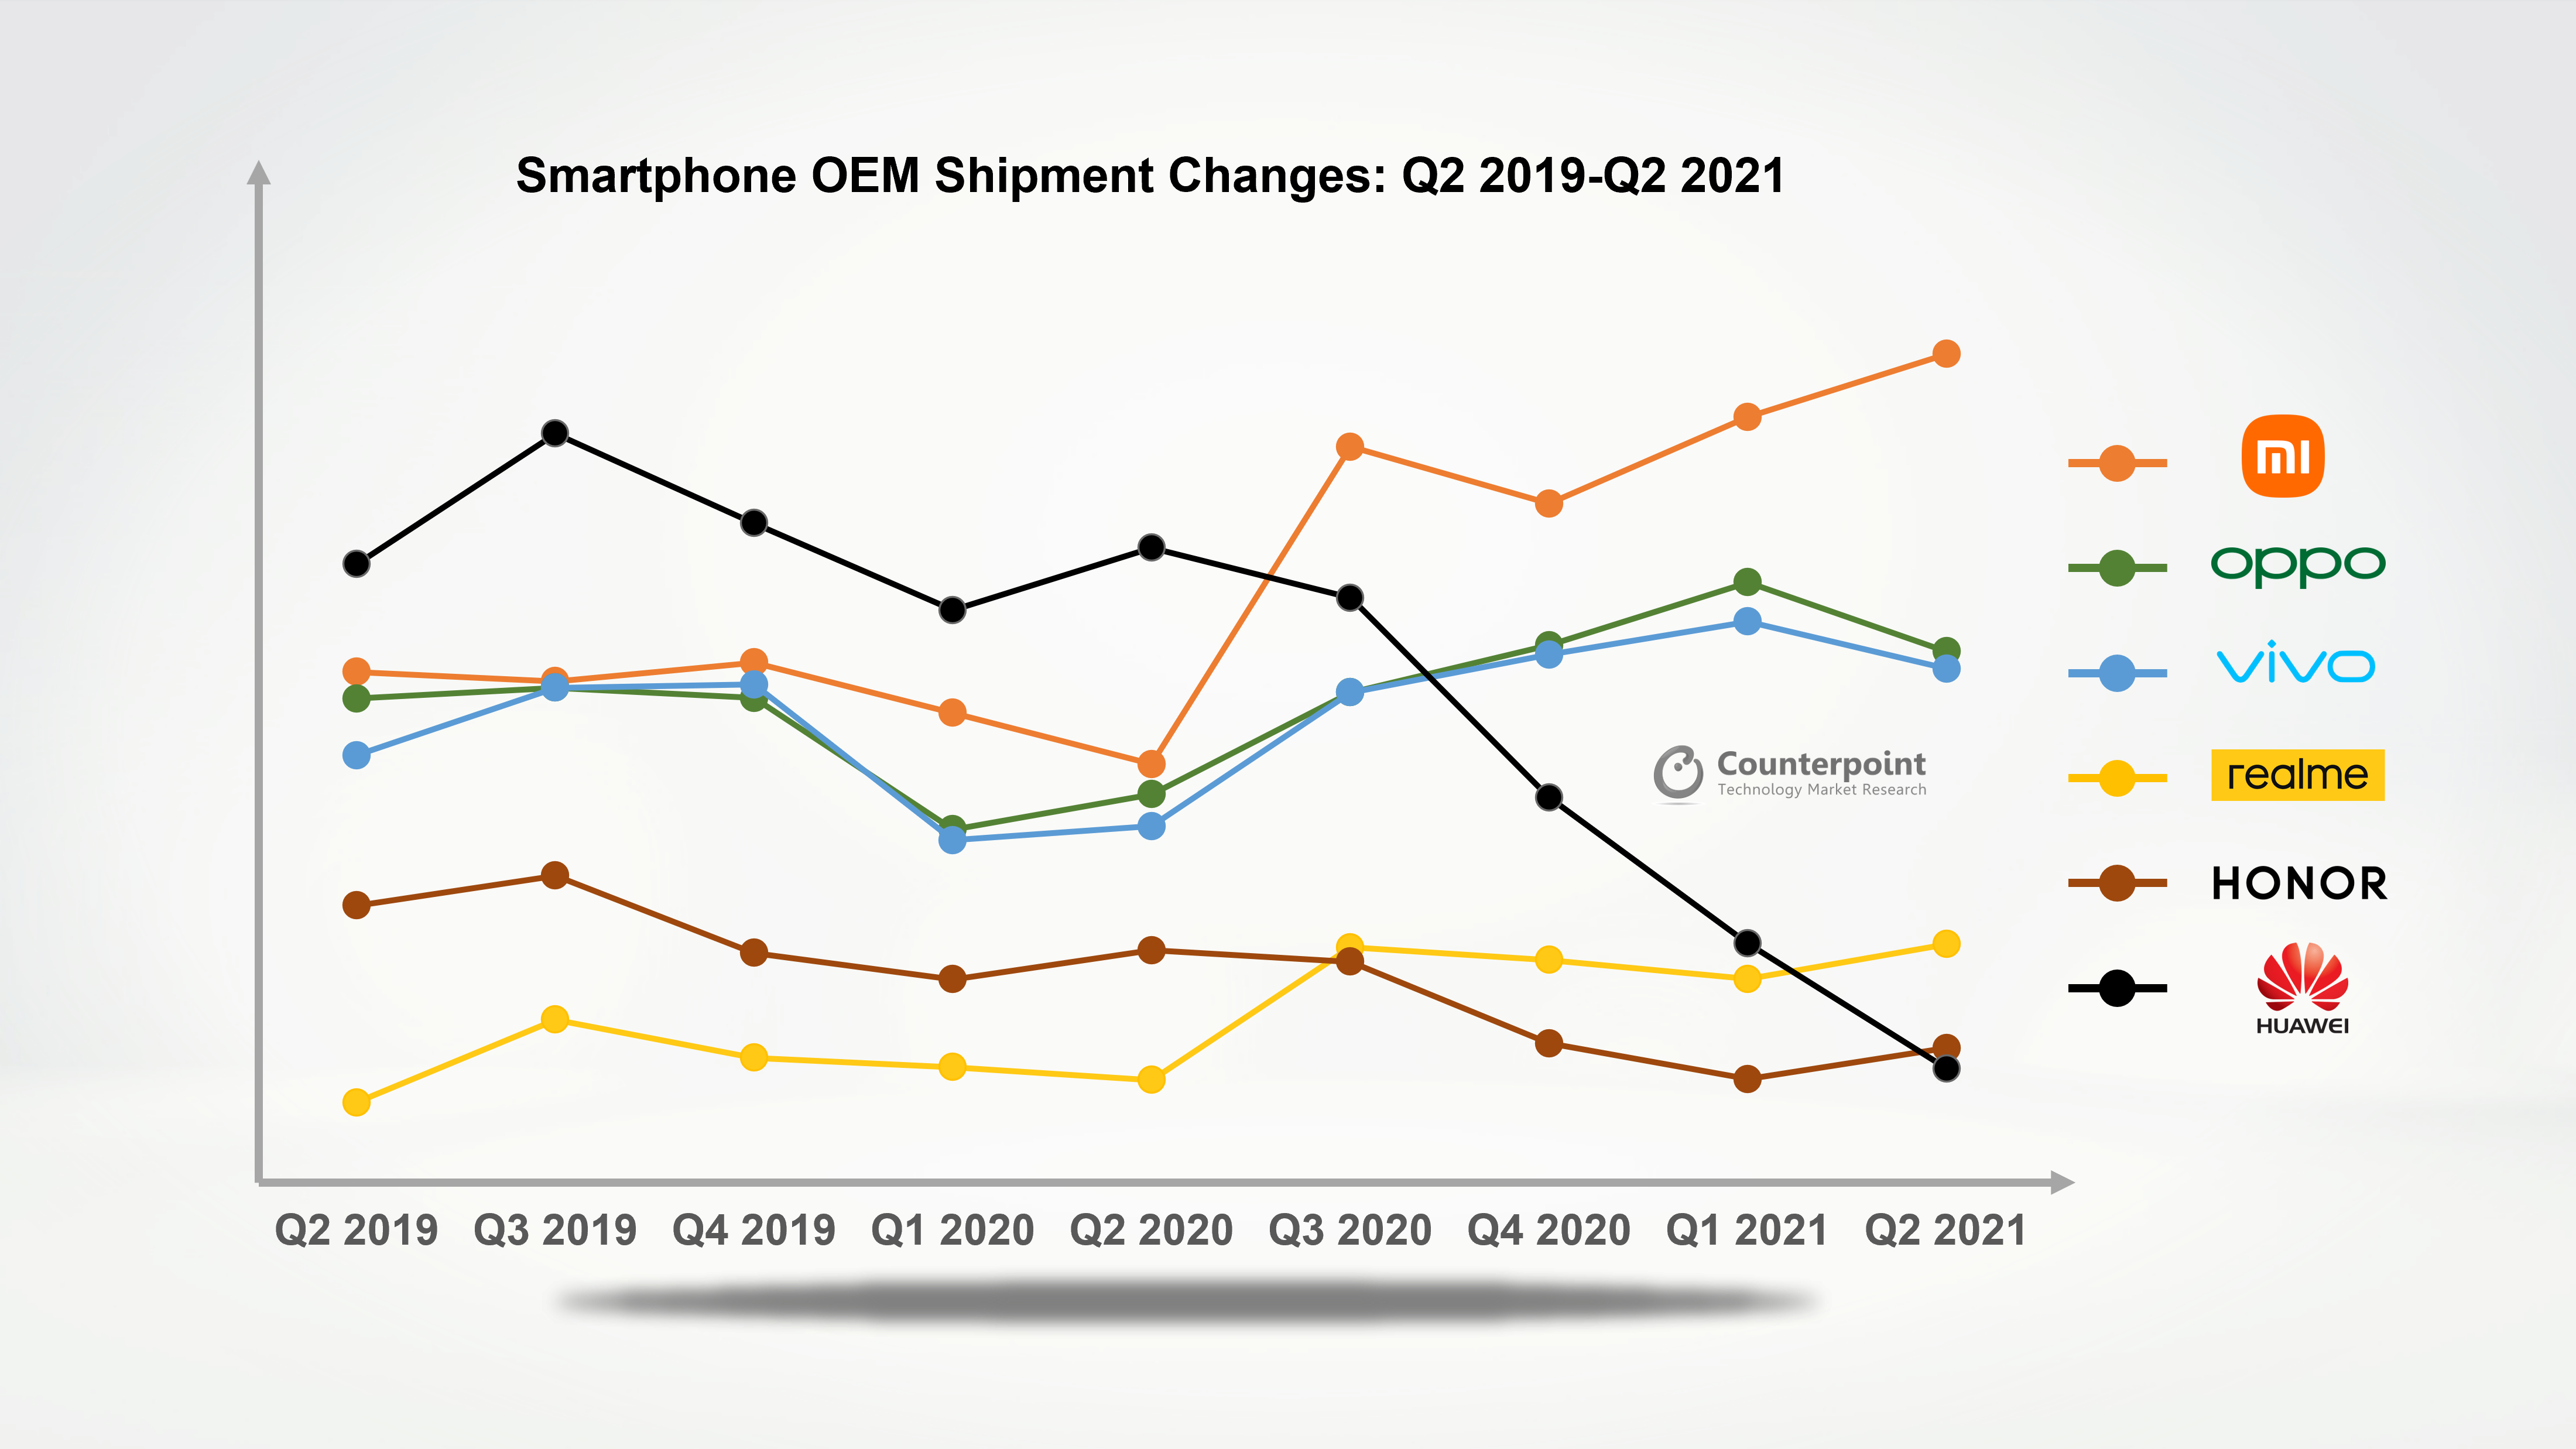 Counterpoint Research Smartphone OEM Shipment Changes: Q2 2019-Q2 2020